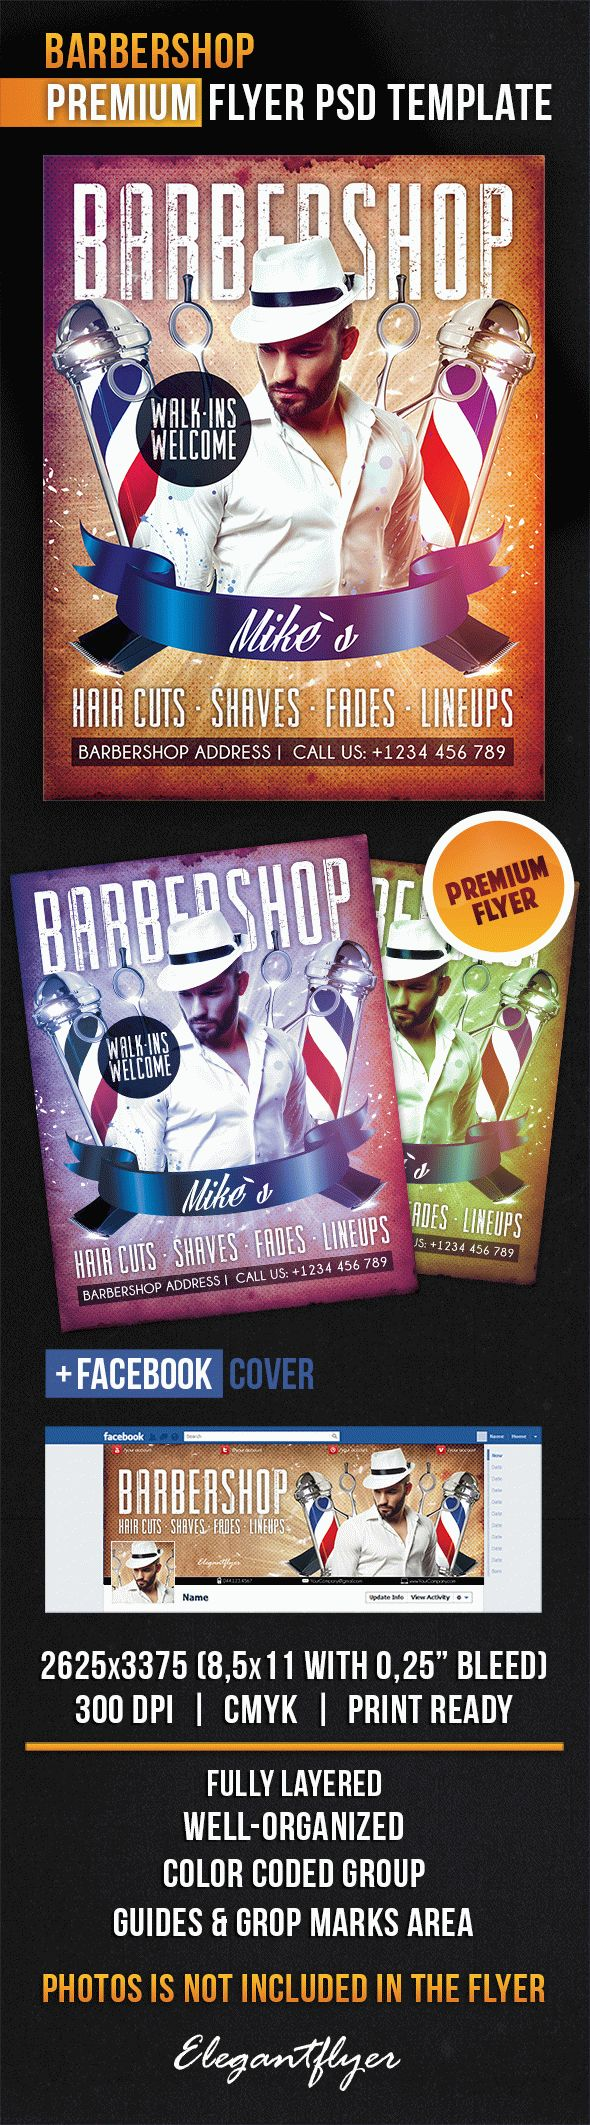 Vip Barbershop PSD Flyer